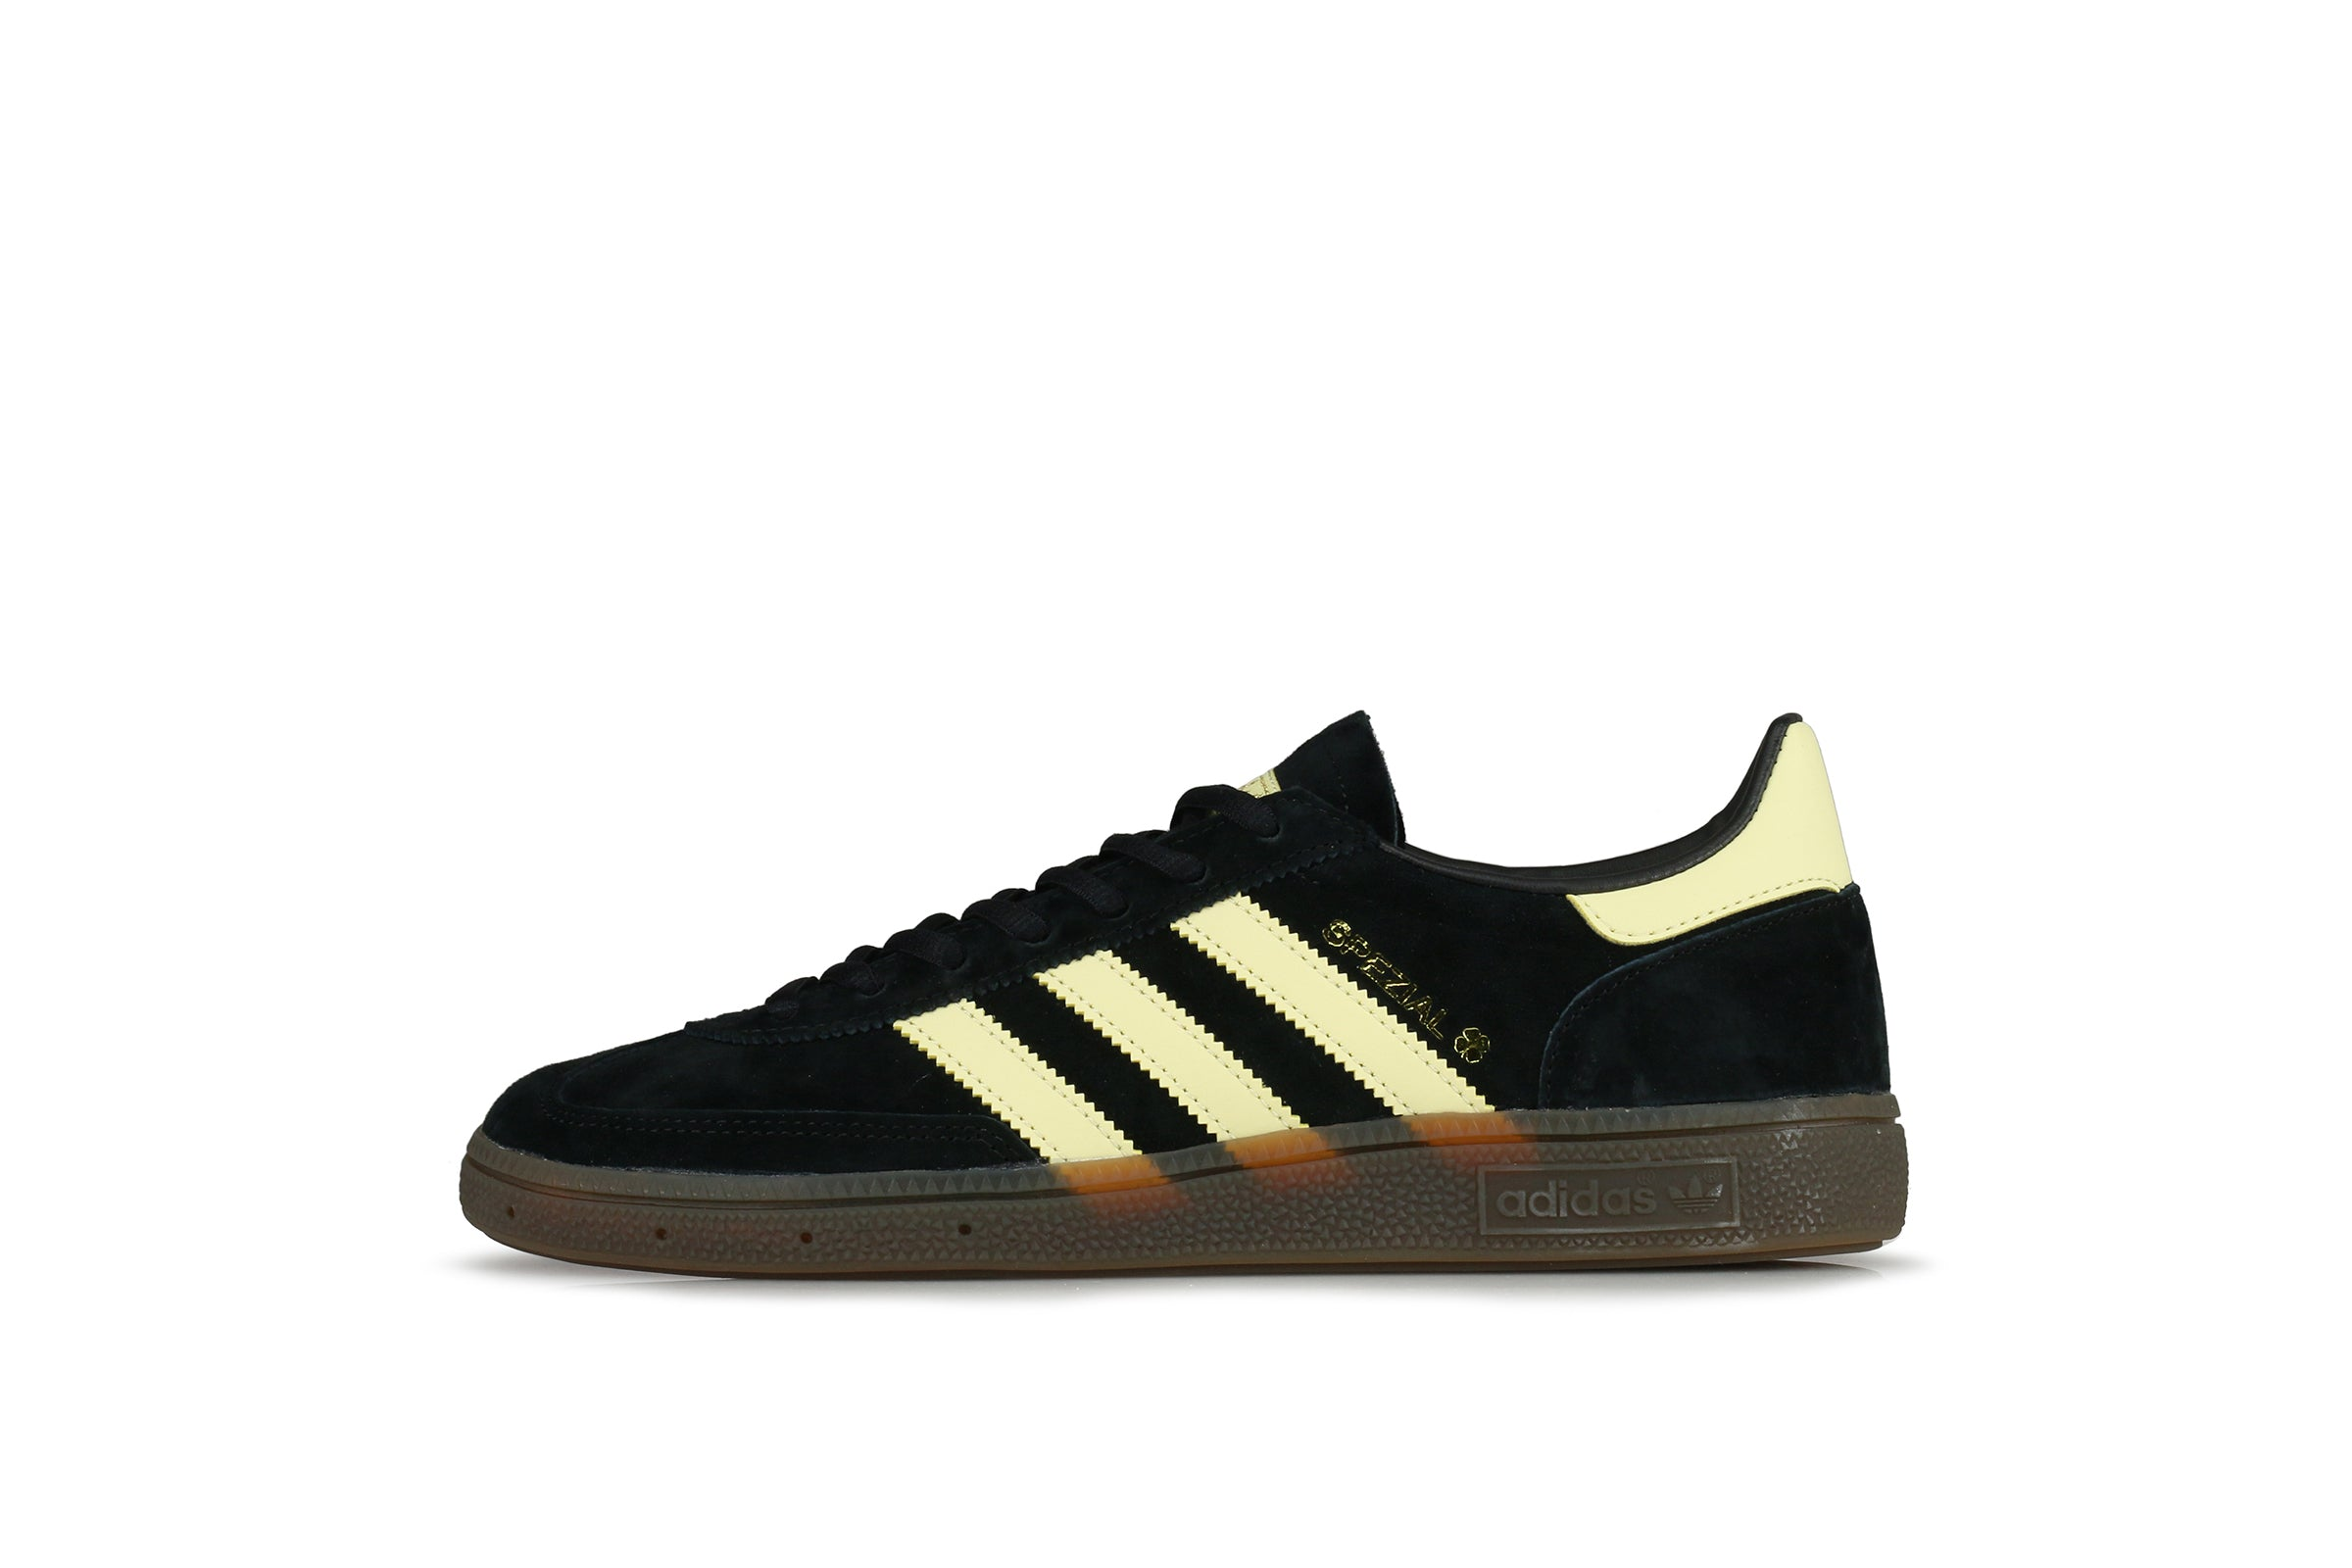 newest 9e776 4921c Adidas Handball SPZL